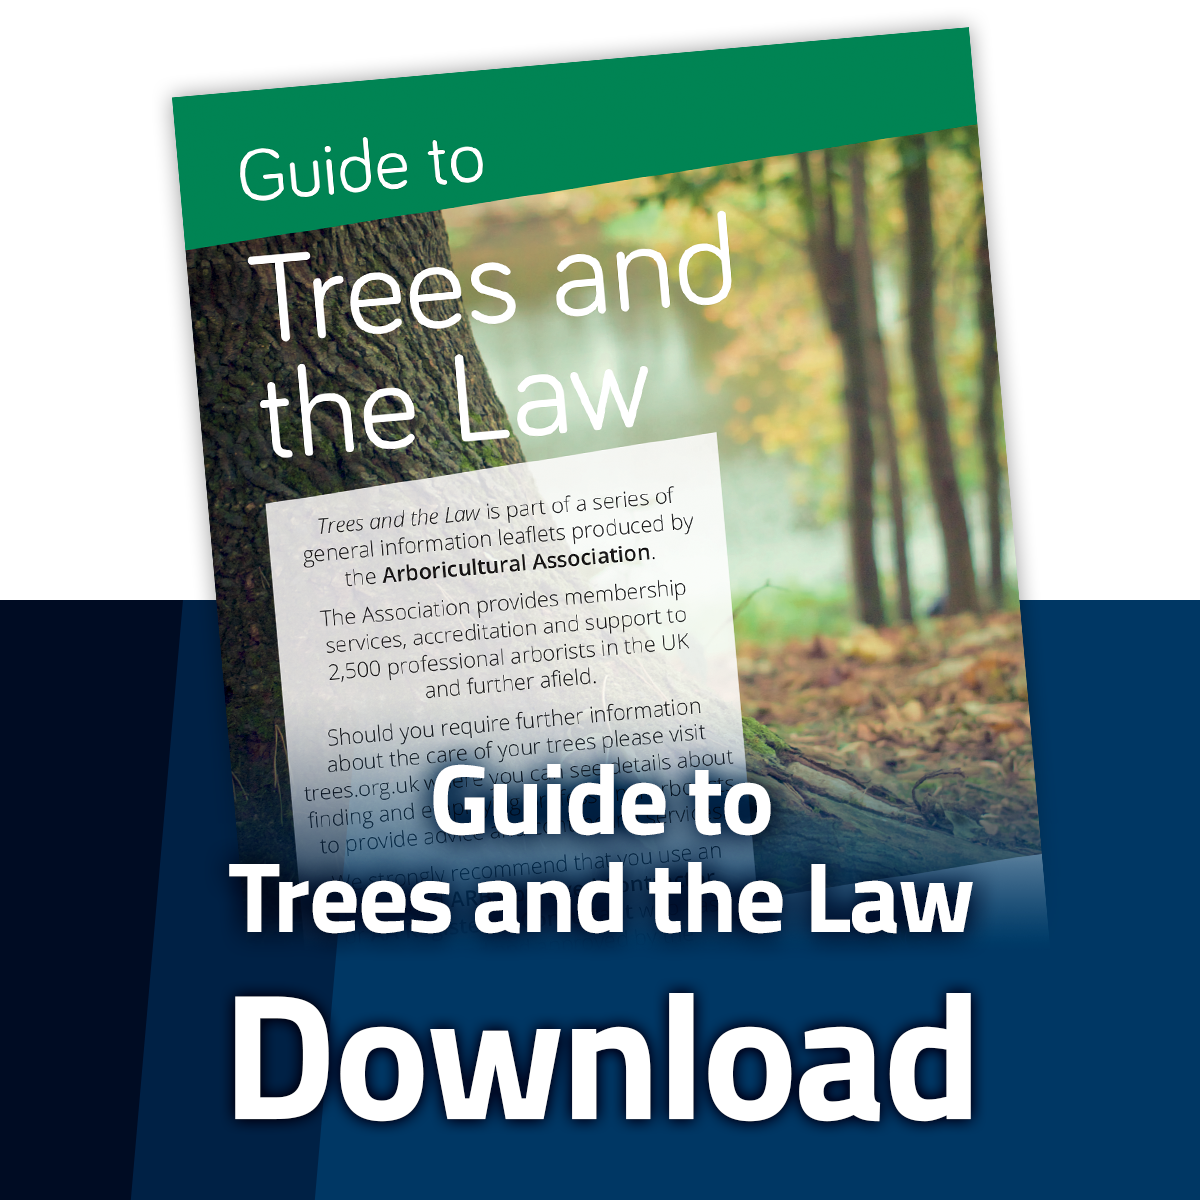 Download the Guide to Trees and the Law Leaflet